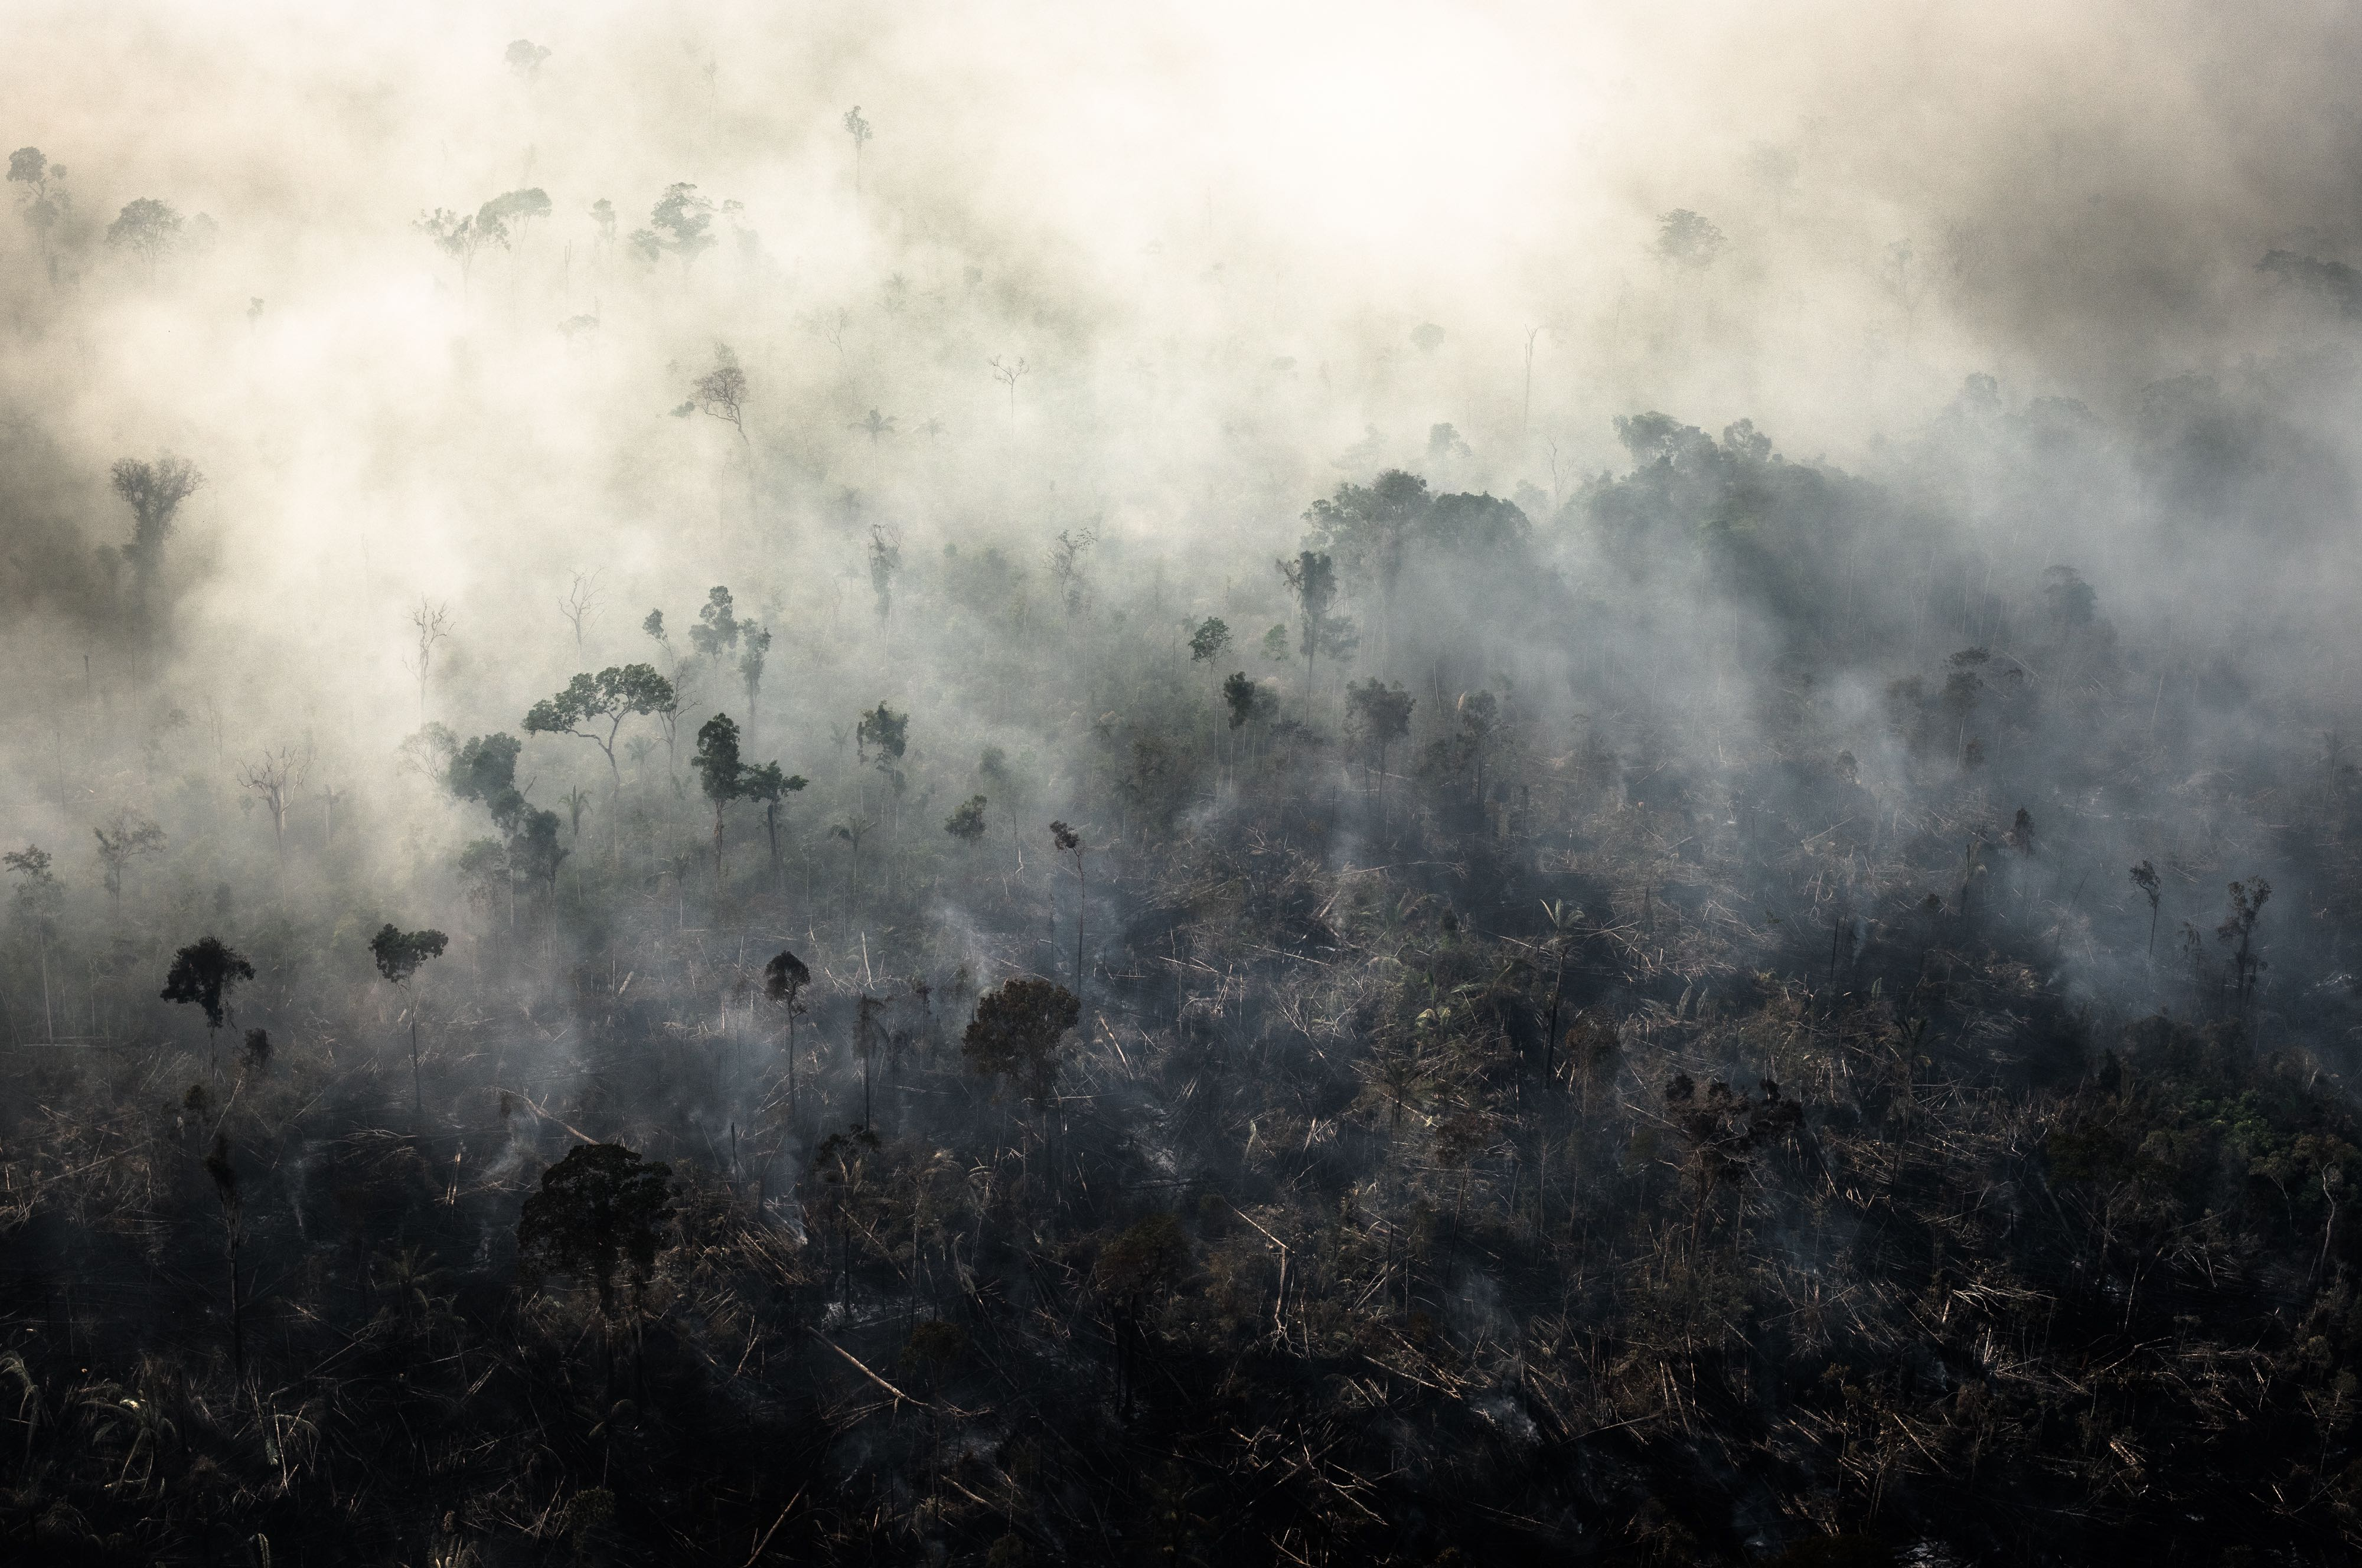 Brazil's Amazon Deforestation Spikes to Highest Level in More Than a Decade